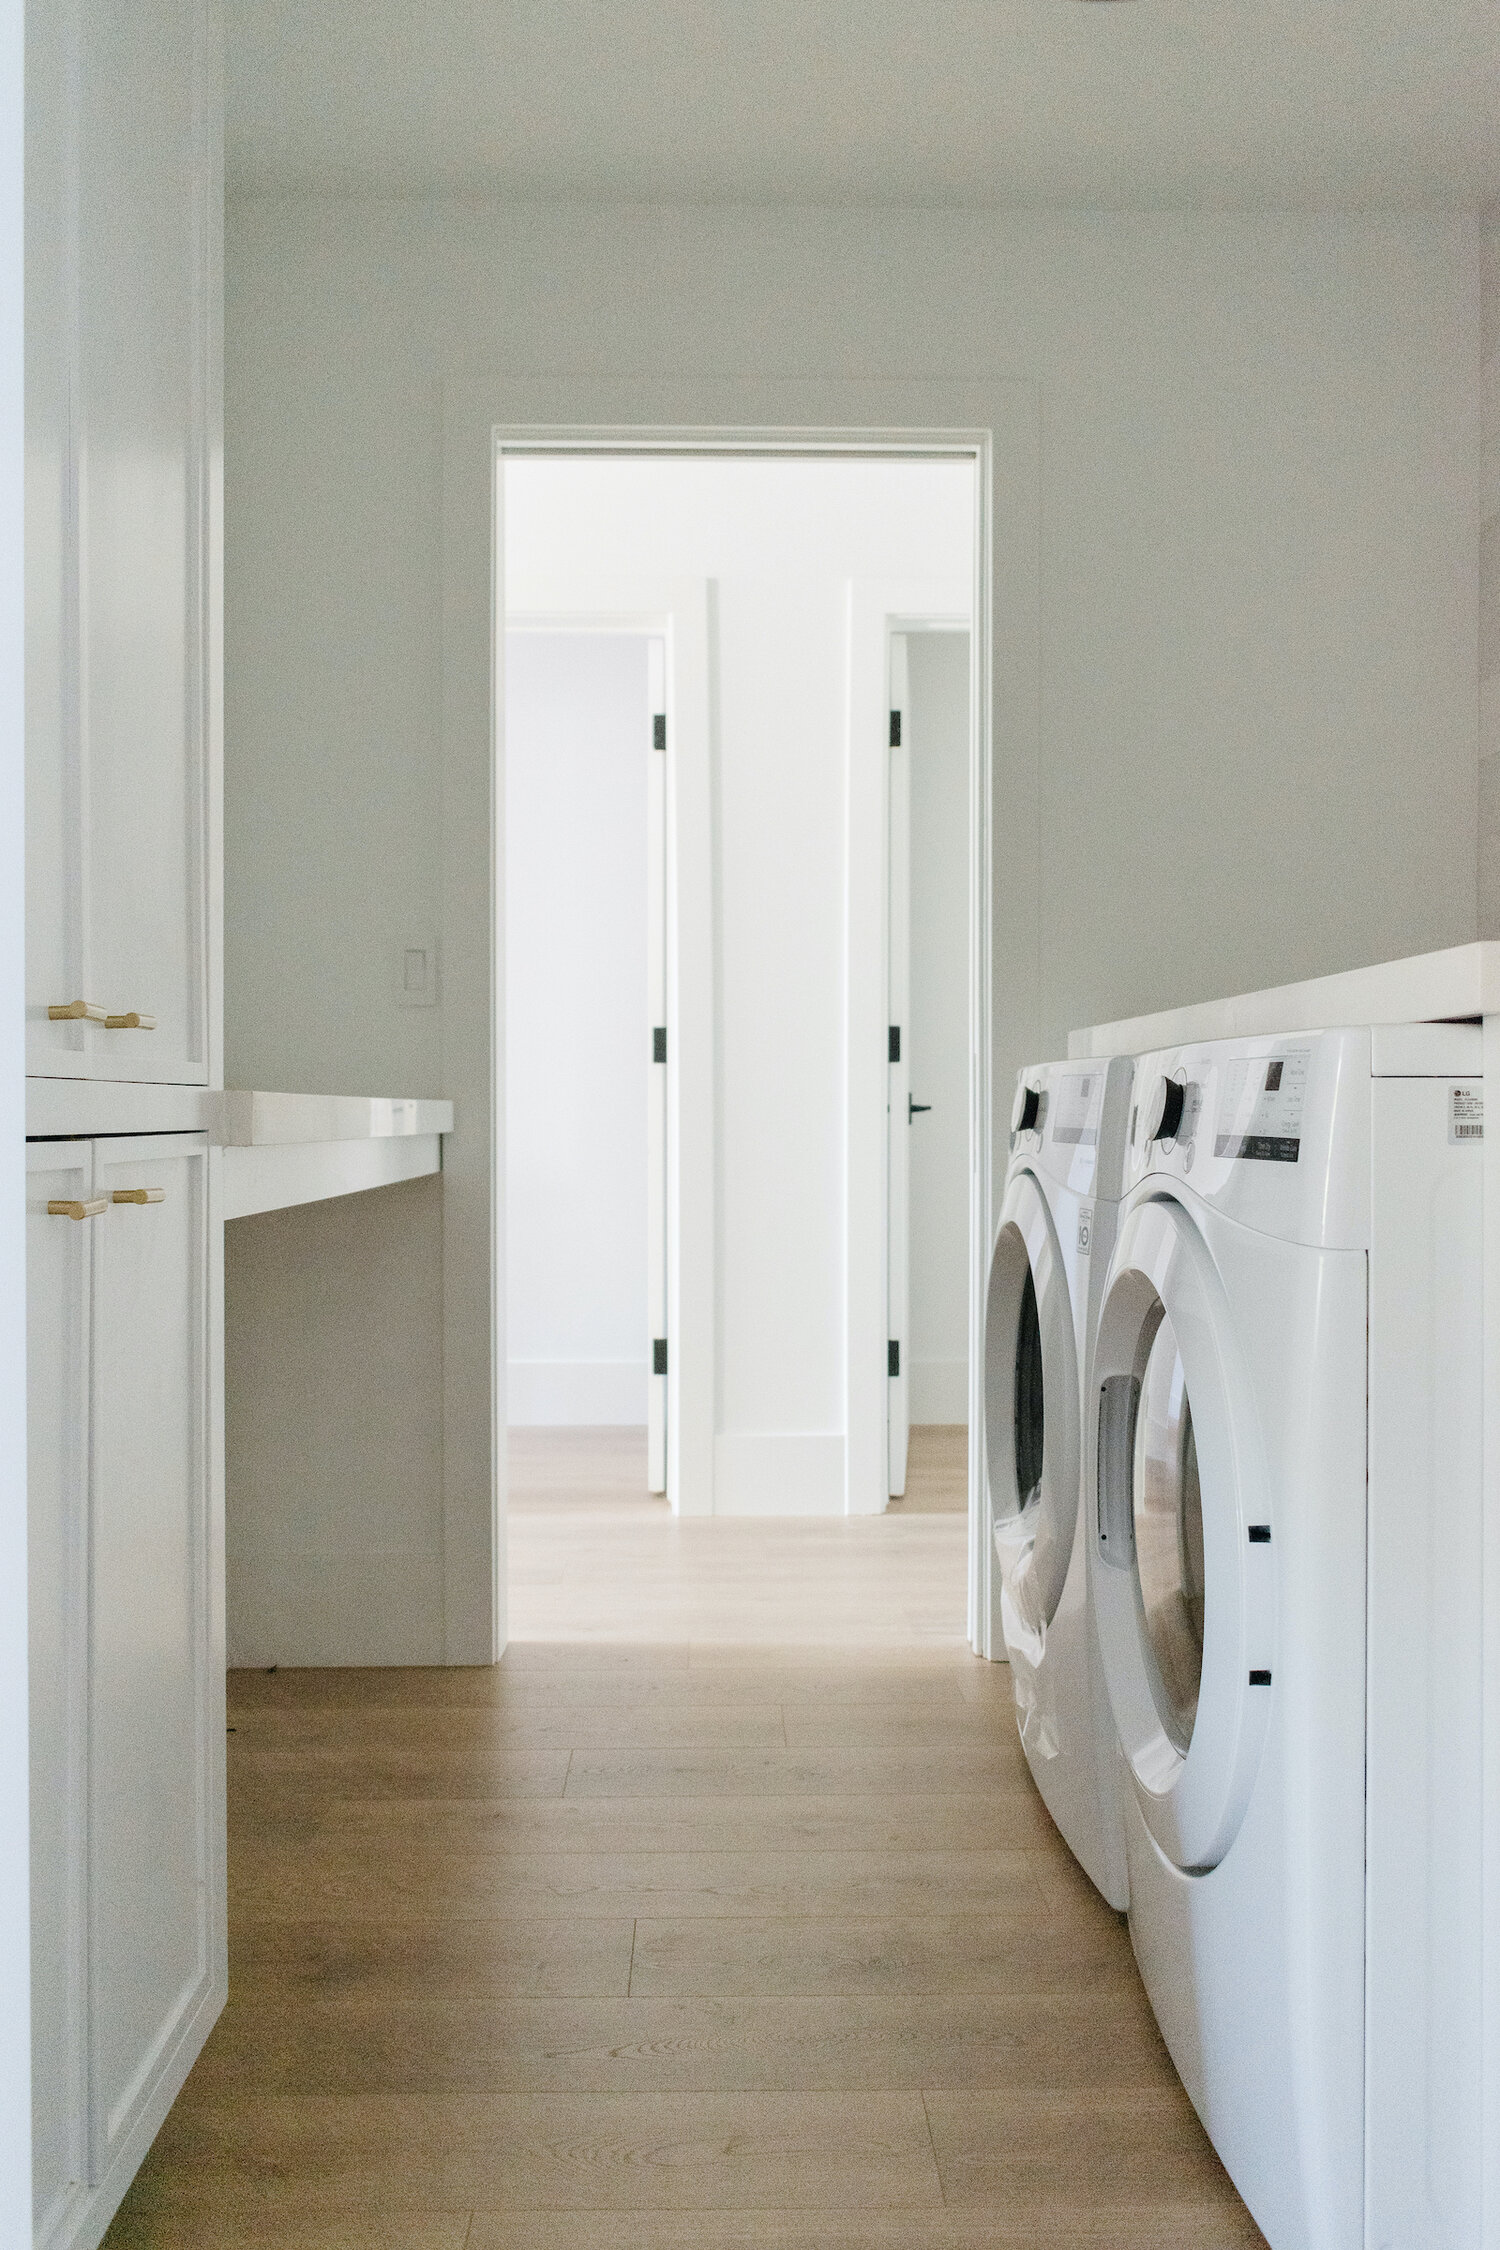 Design Tips For Small Laundry Rooms Water Vista Project Tami Faulkner Design